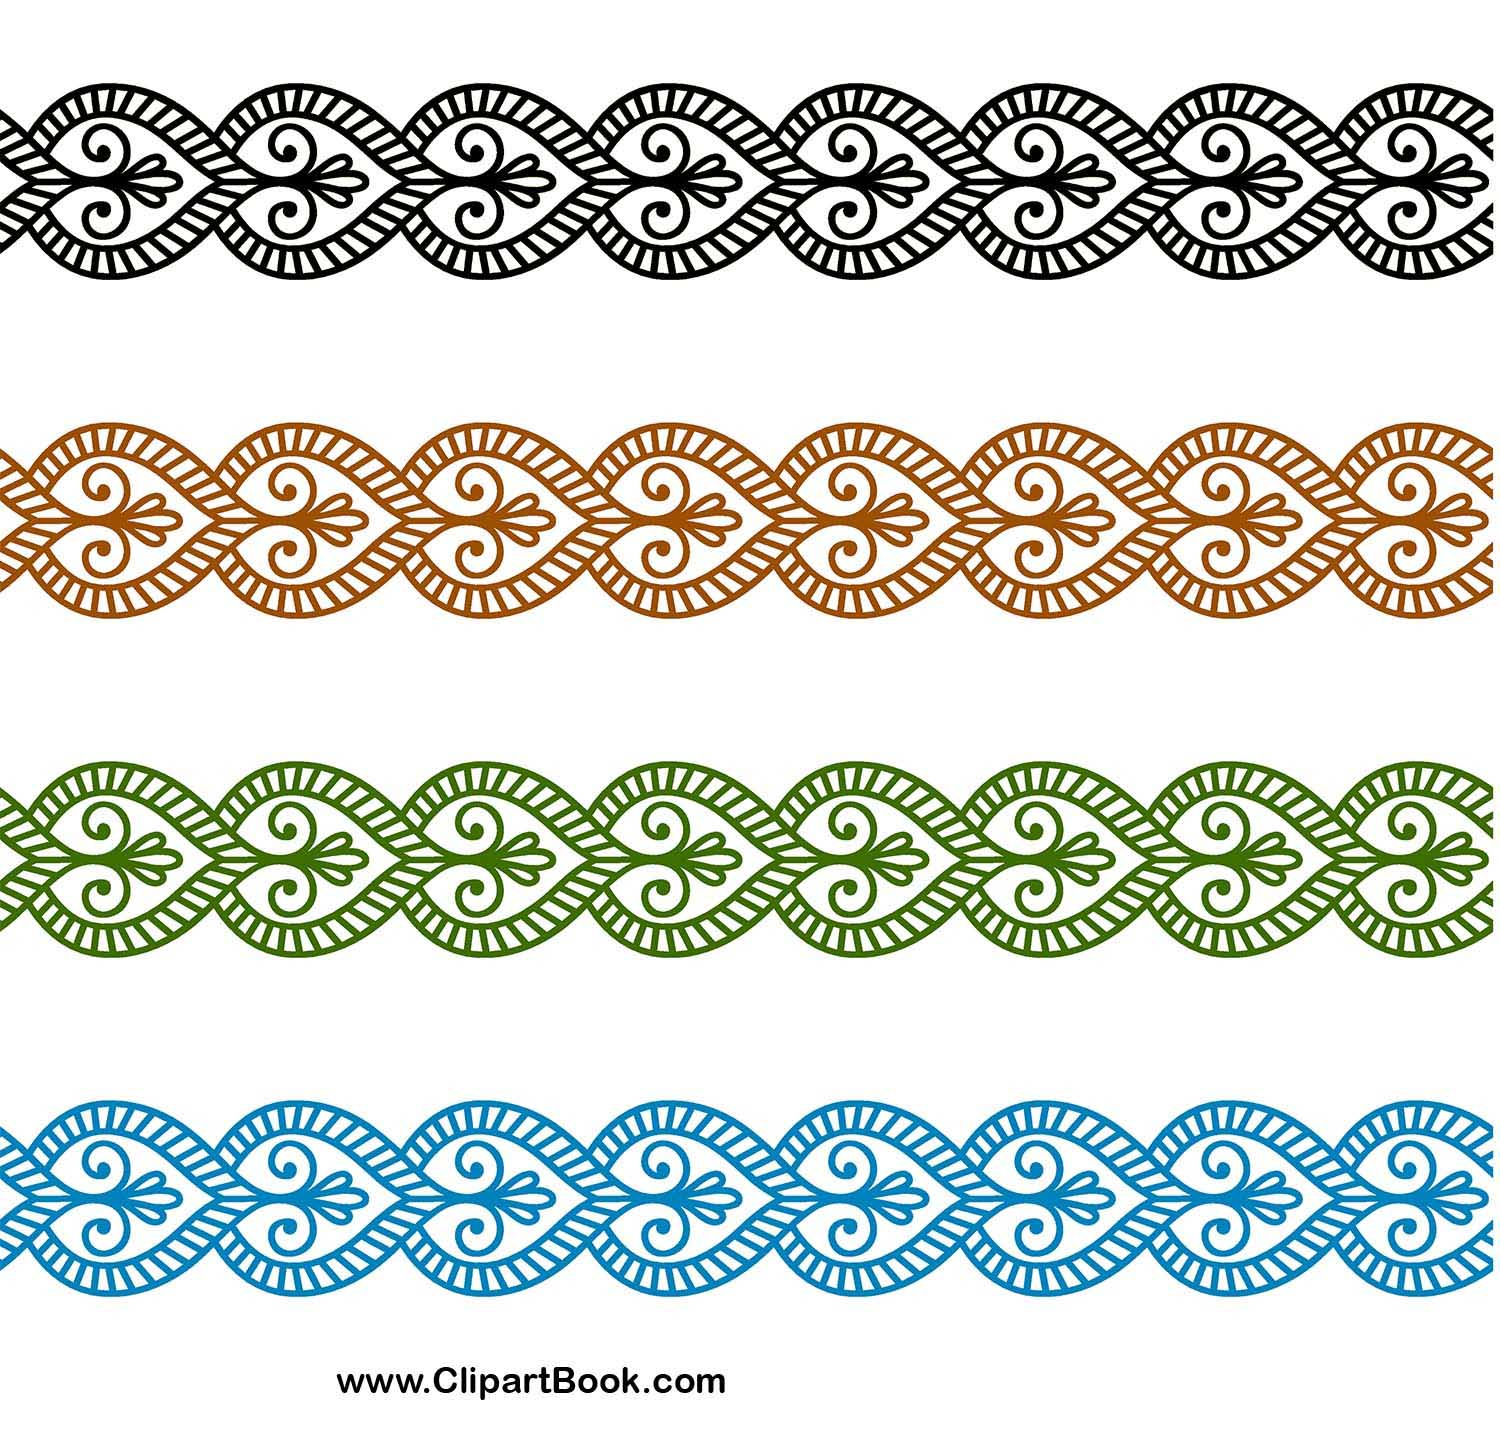 Embroidery Digitizing Borders Designs Indian Motif Henna Mehndi